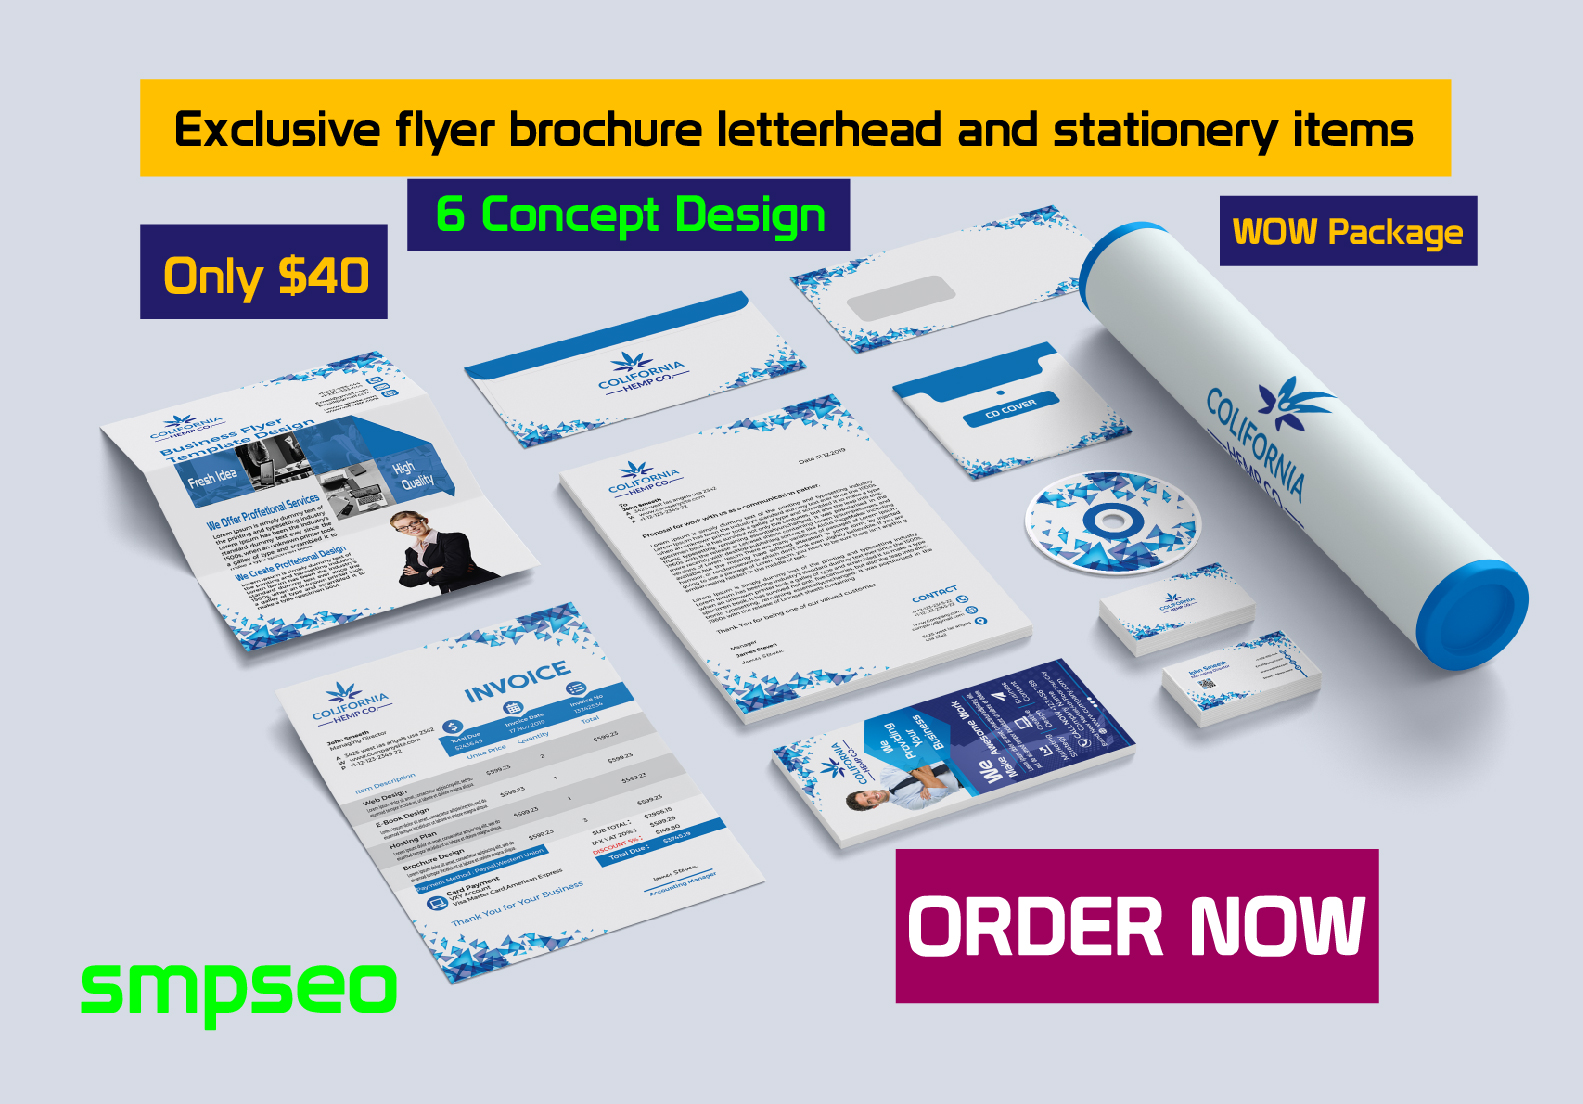 Exclusive flyer brochure letterhead stationery items